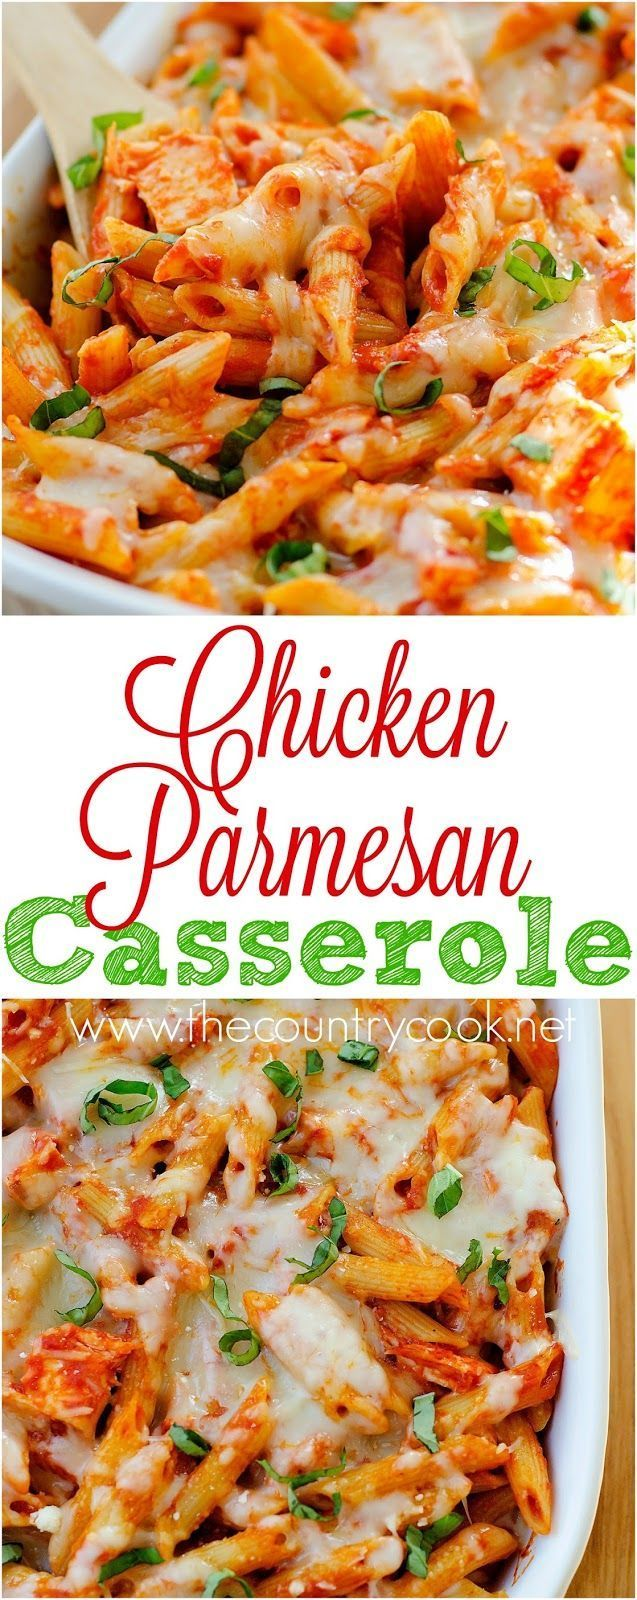 Chicken Parmesan Casserole recipe from Life in the Lofthouse at The Country Cook. Layers of cheesy pasta and chicken and marinara. I would use a store-bought rotisserie chicken to make this come together quickly!